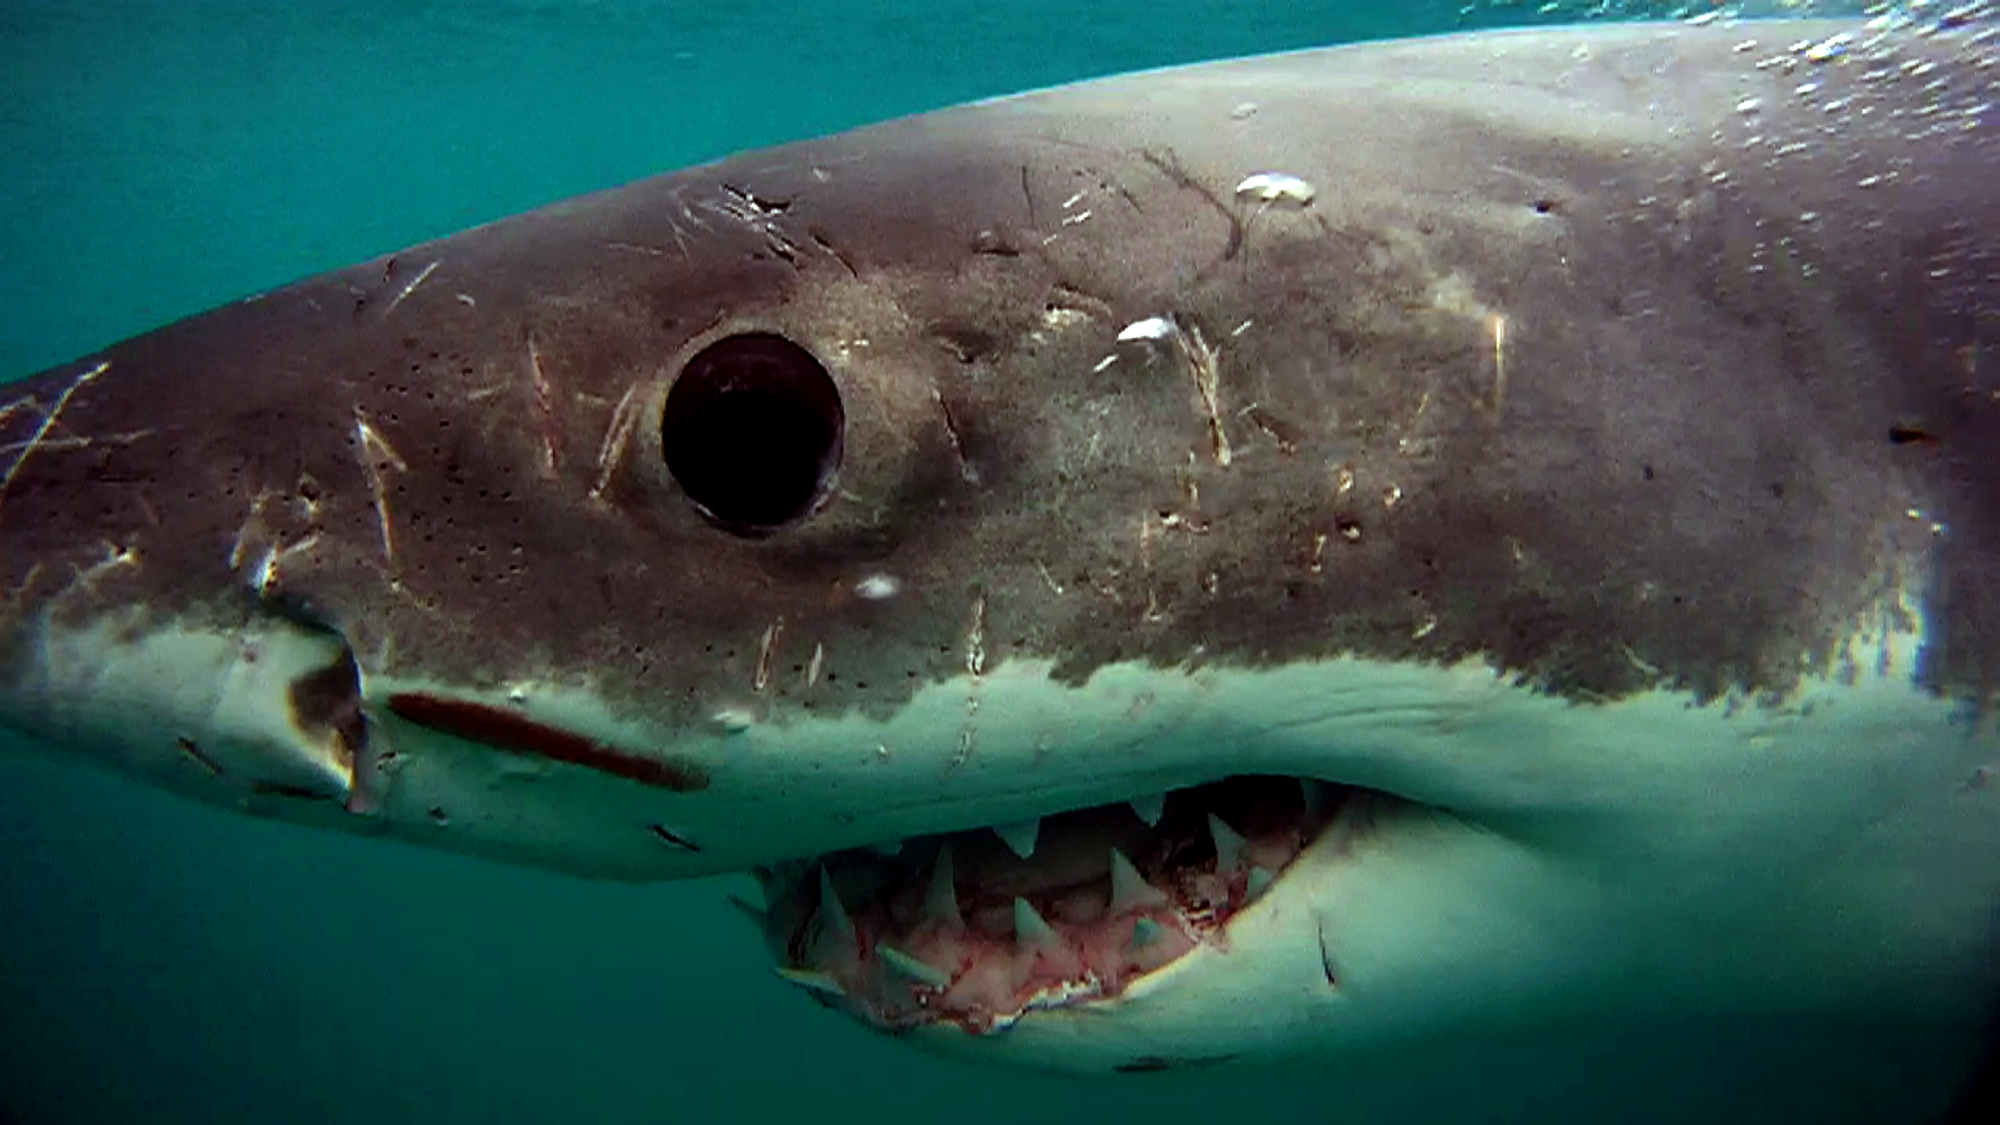 The scarred head of a White shark close up, showing the big black eye and triangular teeth © Dave Abbott